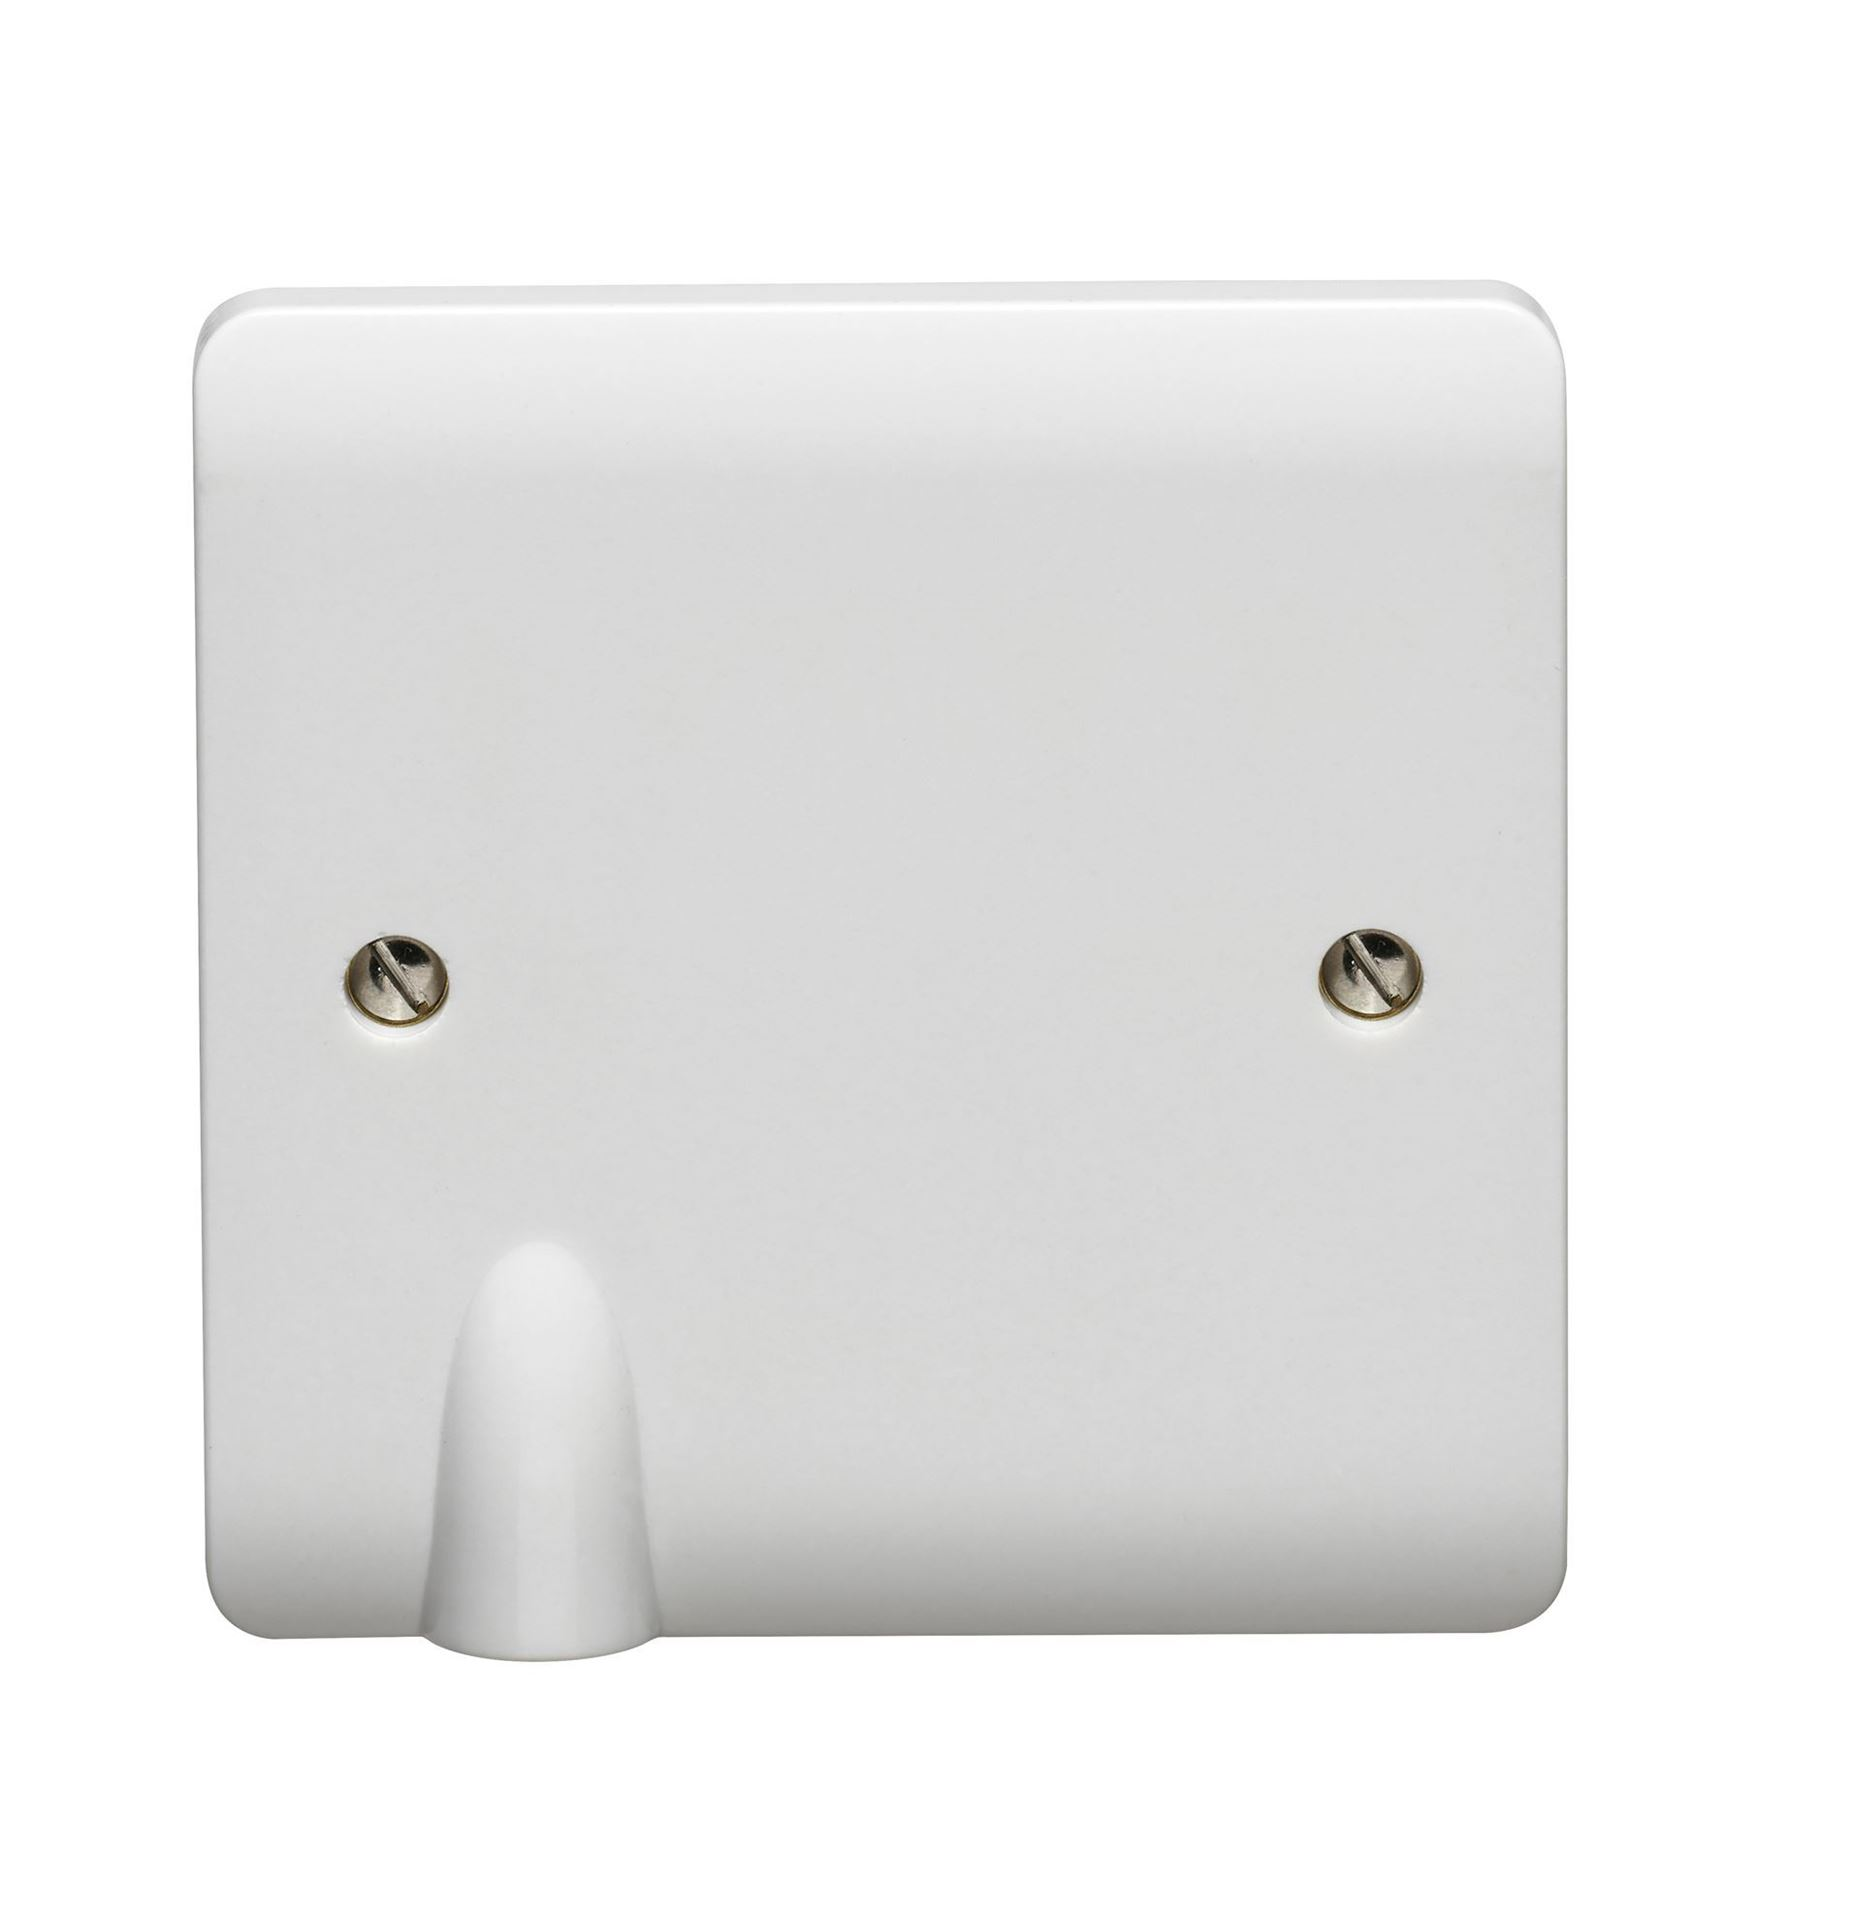 CRABTREE INSTINCT 1G 20A FLEX OUTLET CR1075